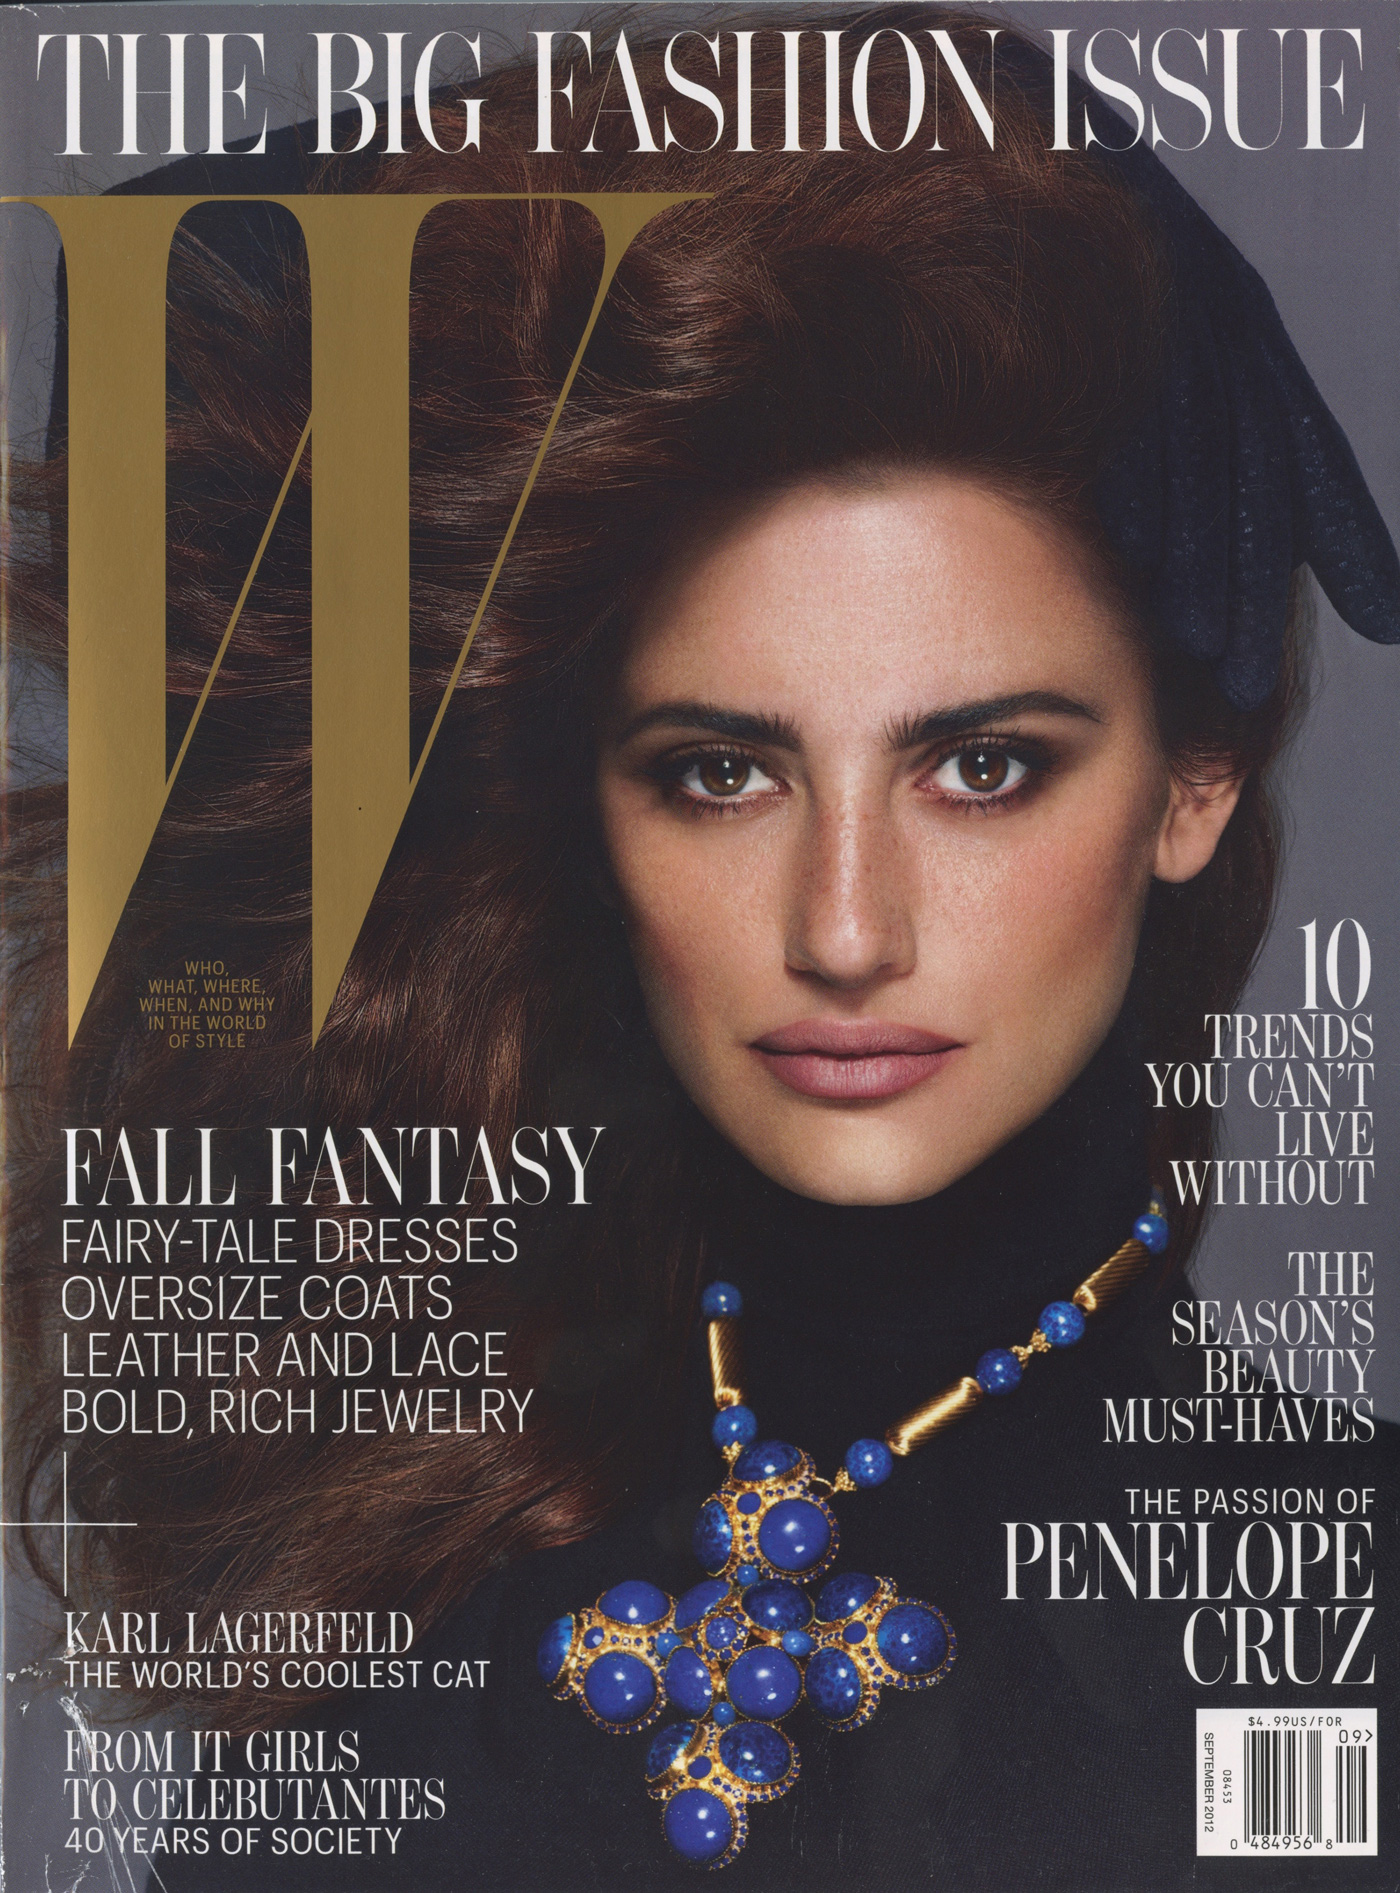 W Magazine, Sept. 2012 - cover